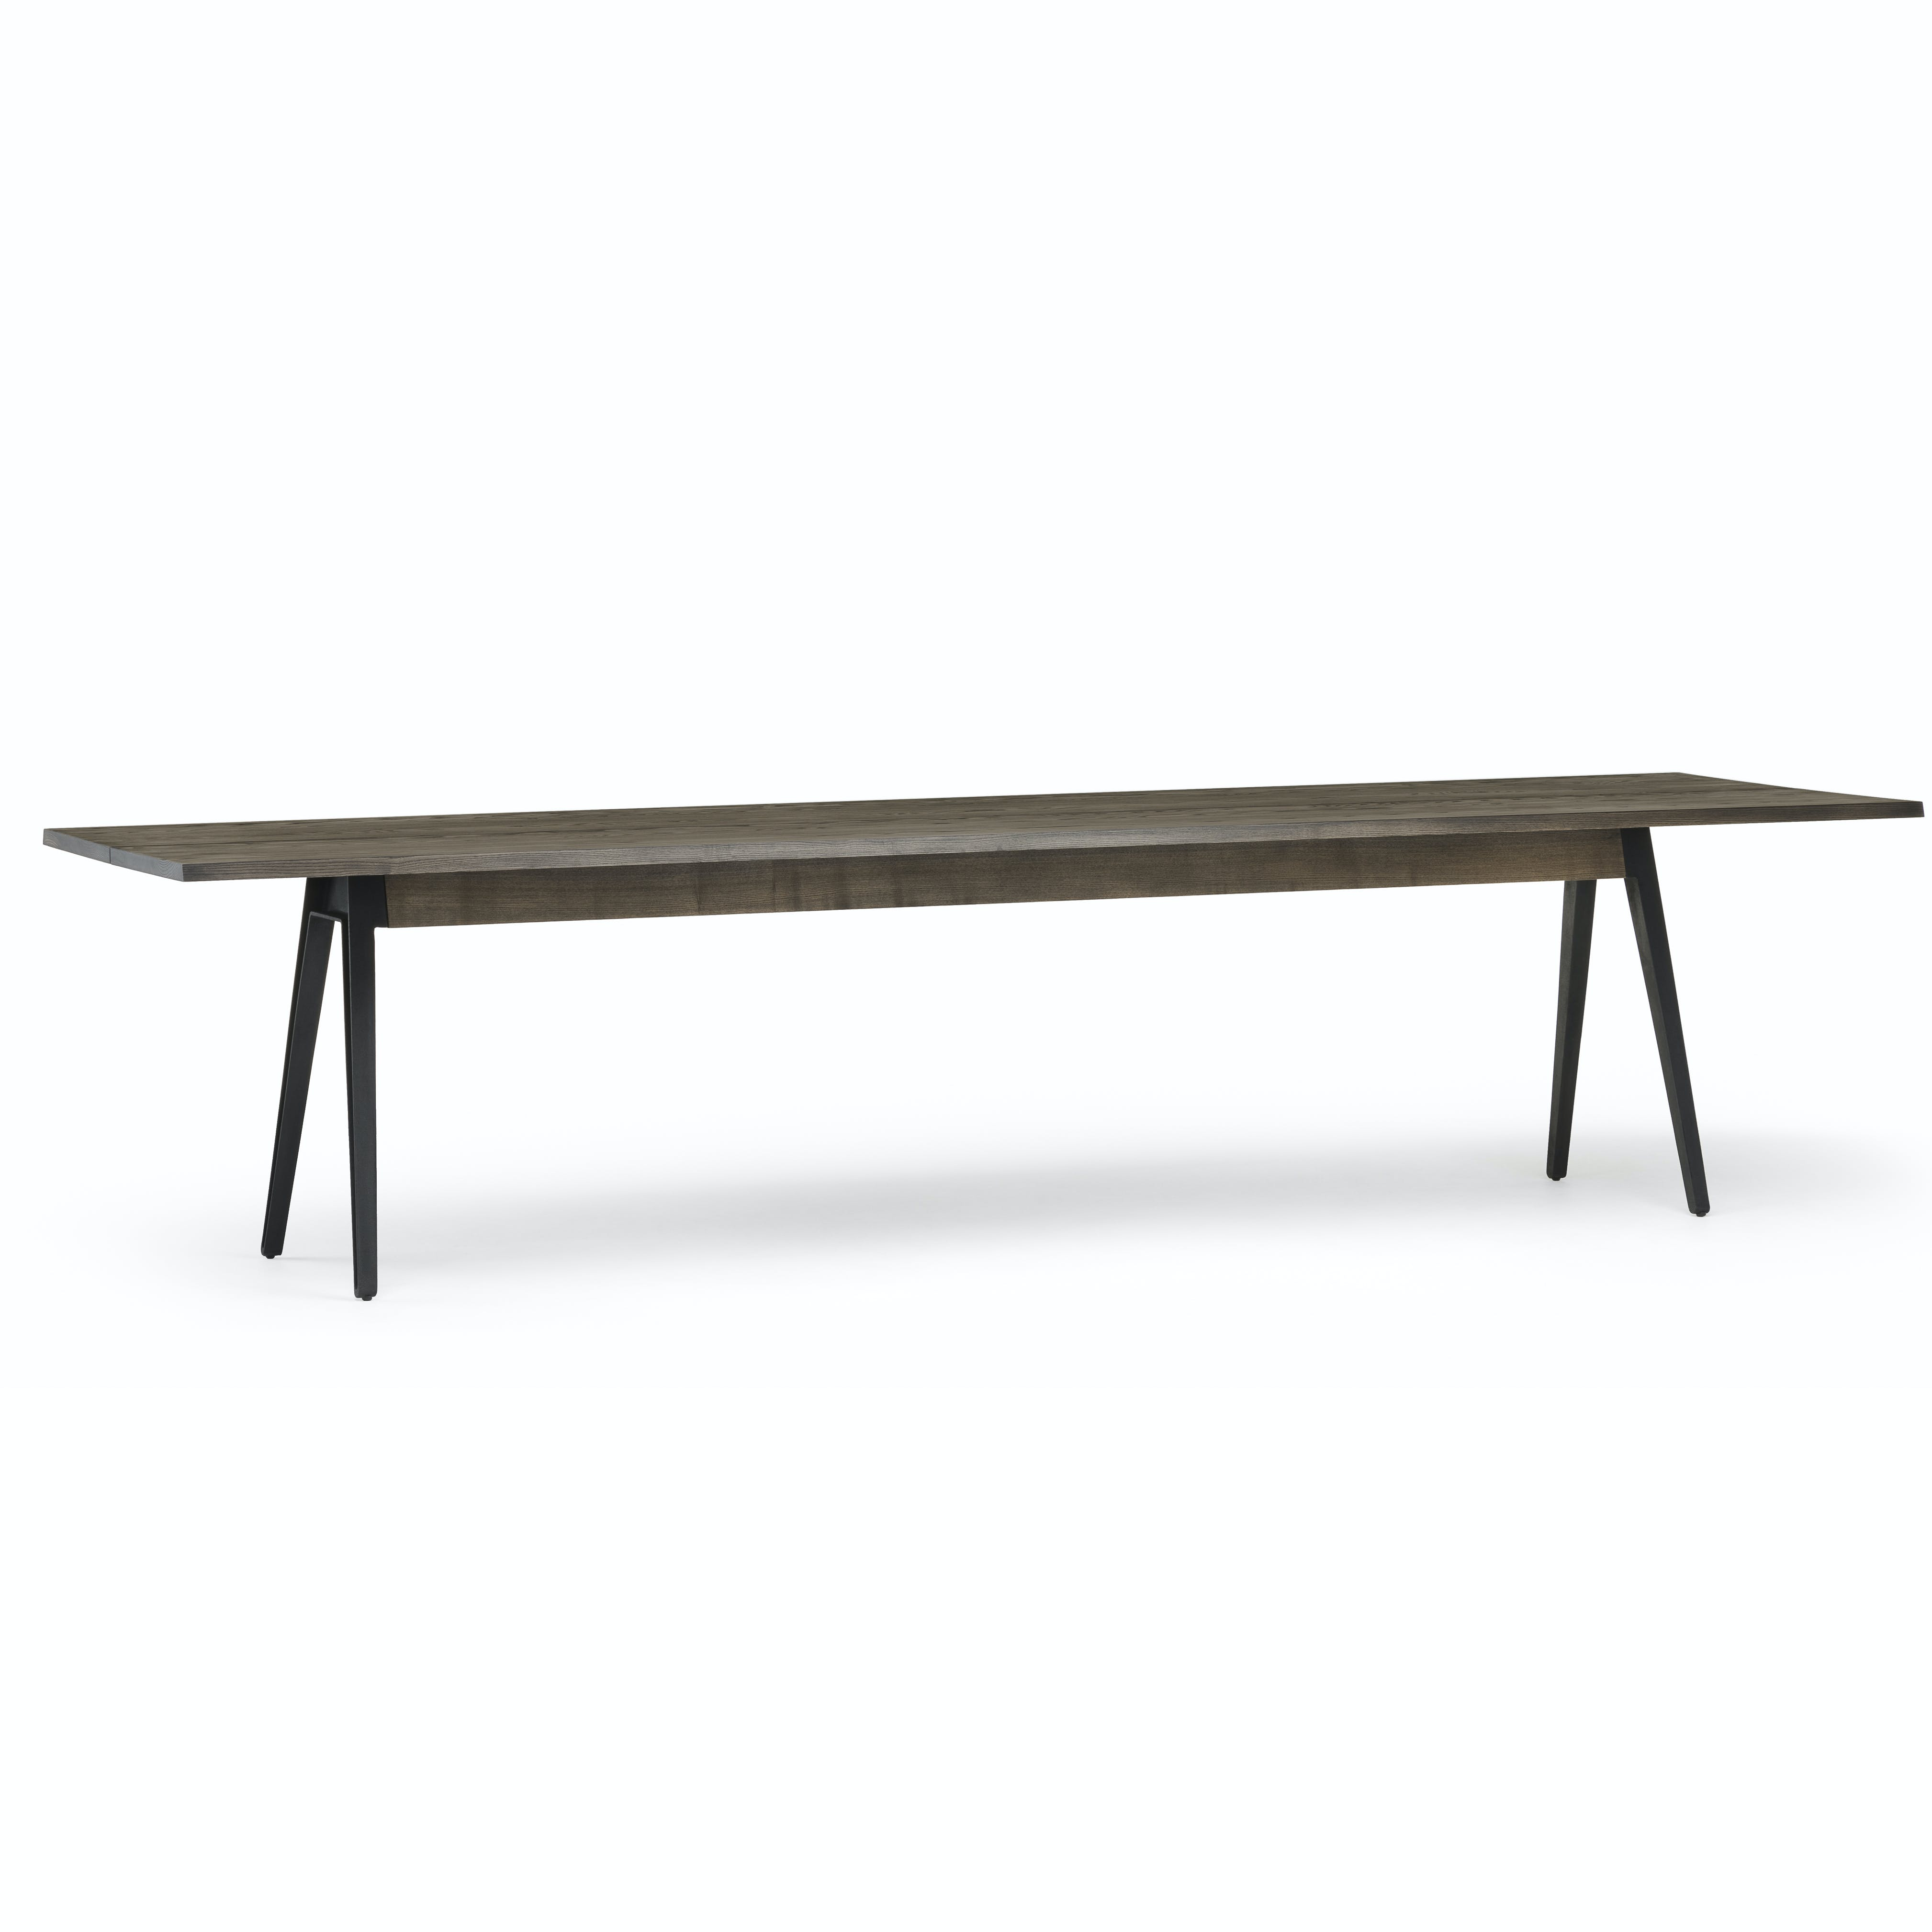 De La Espada Matthew Hilton Welles Table Thumbnail Haute Living